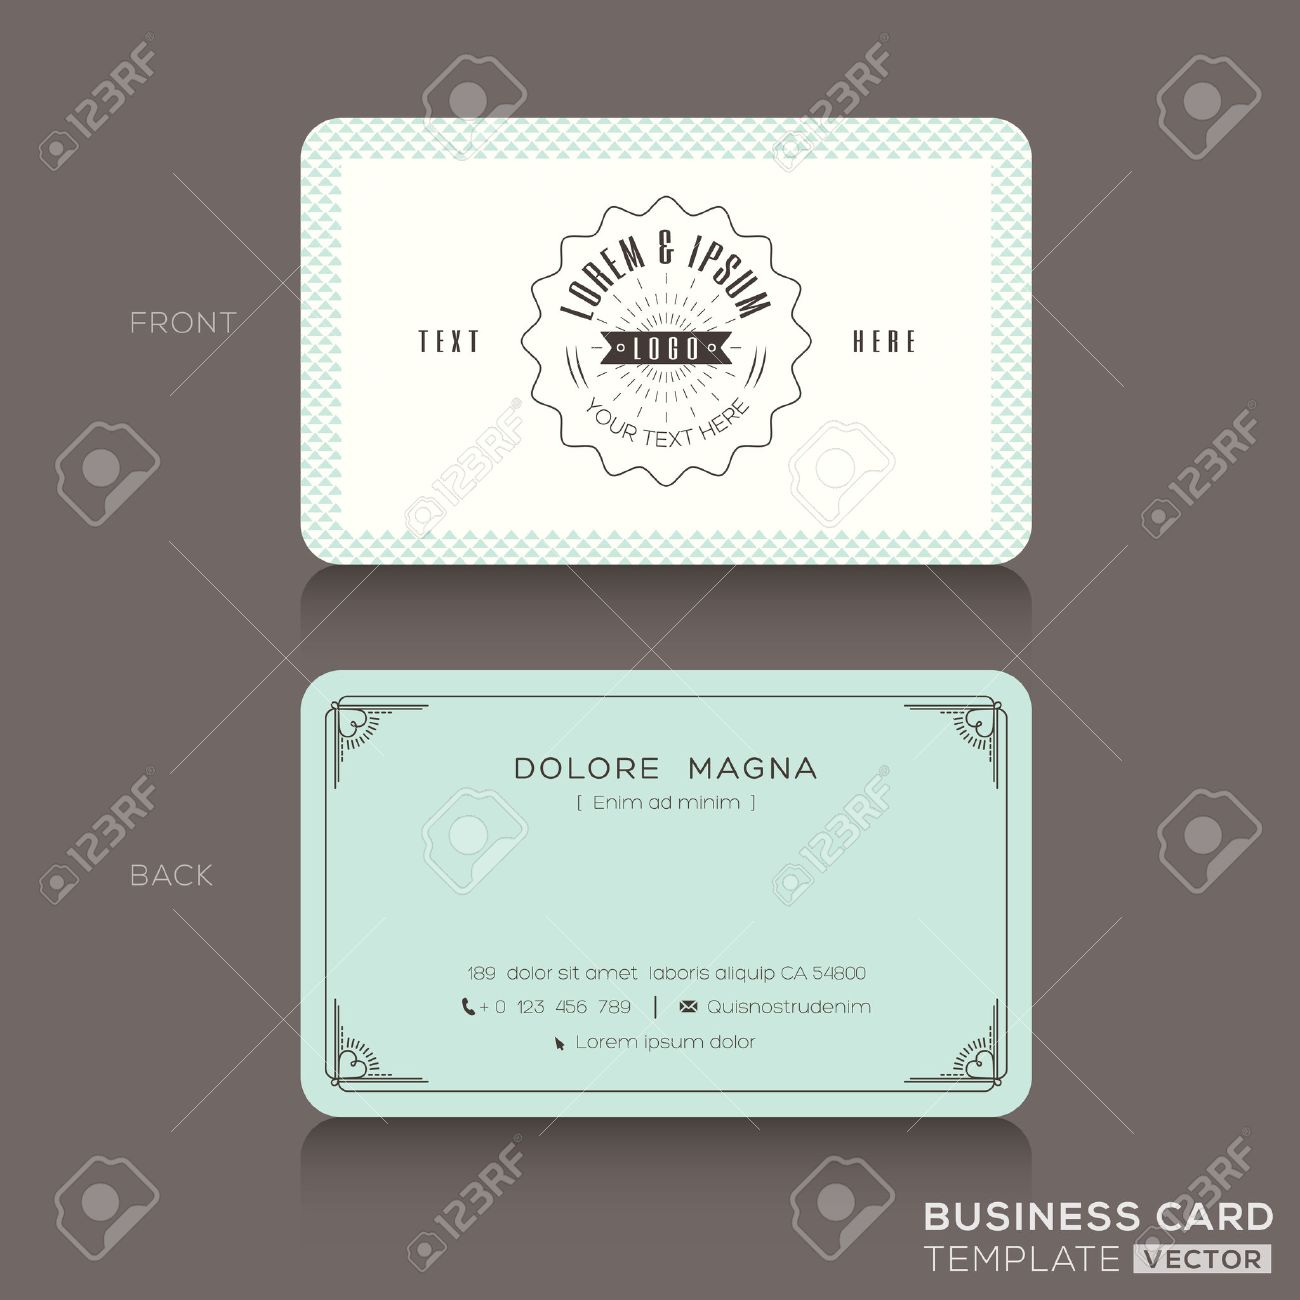 Retro hipster business card design template royalty free cliparts imagens retro hipster business card design template reheart Image collections